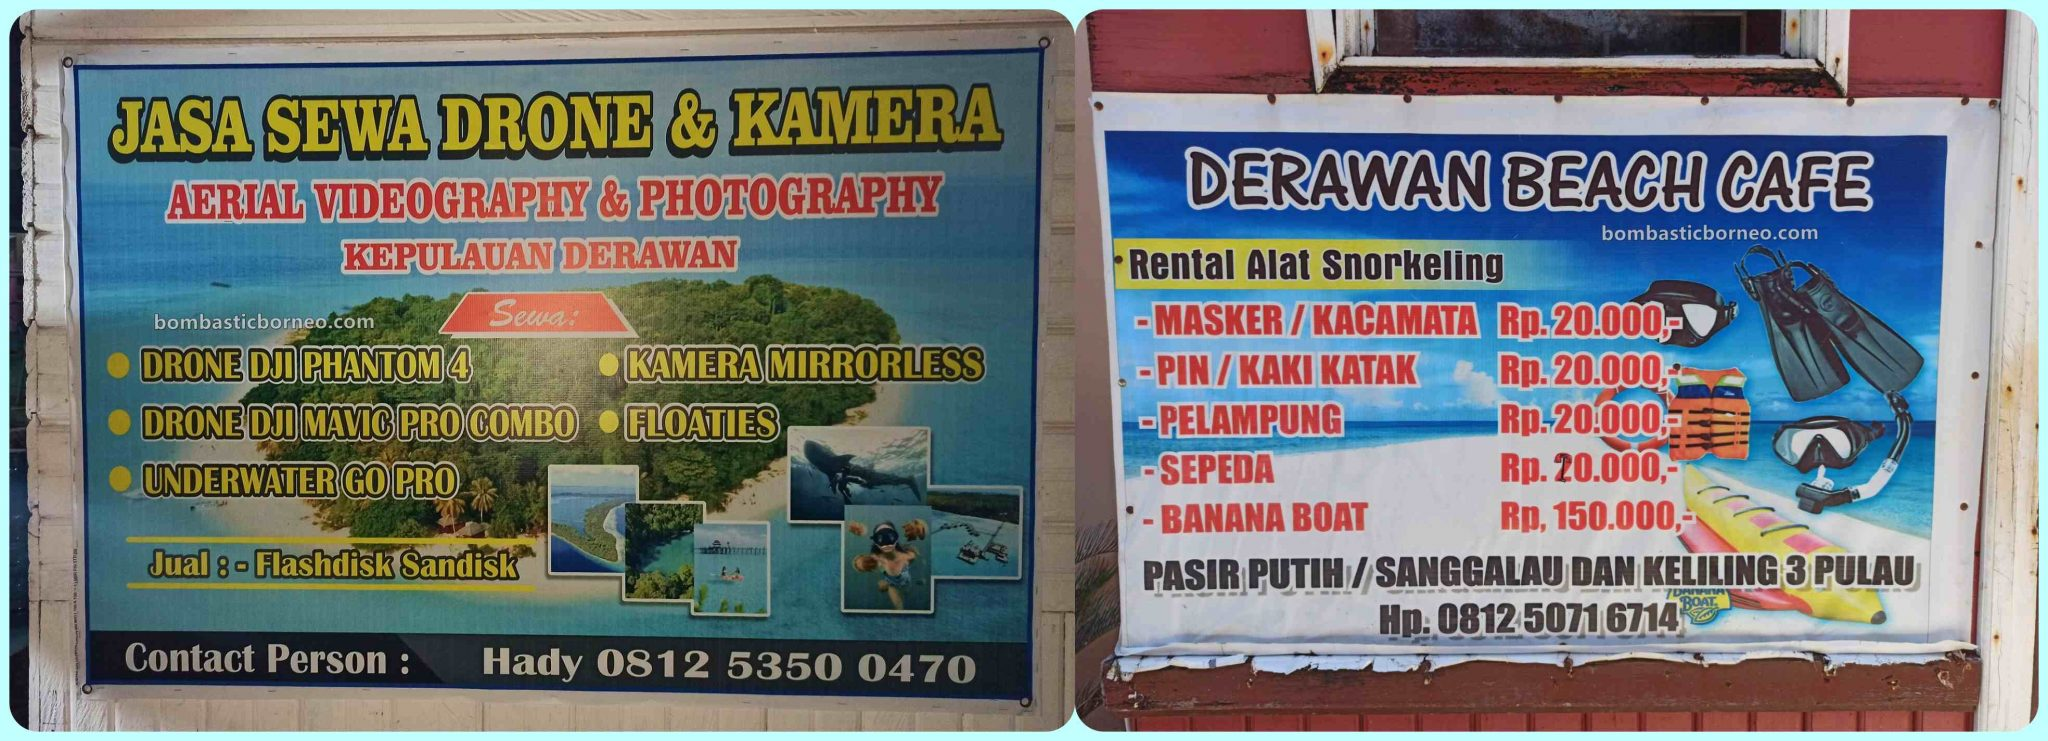 Derawan Island, backpackers, destination, dive site, holiday, vacation, Berau, Kalimantan Timur, Pariwisata, Tourism, travel guide, Borneo, 印尼东加里曼丹, 达拉湾岛潜水天堂,